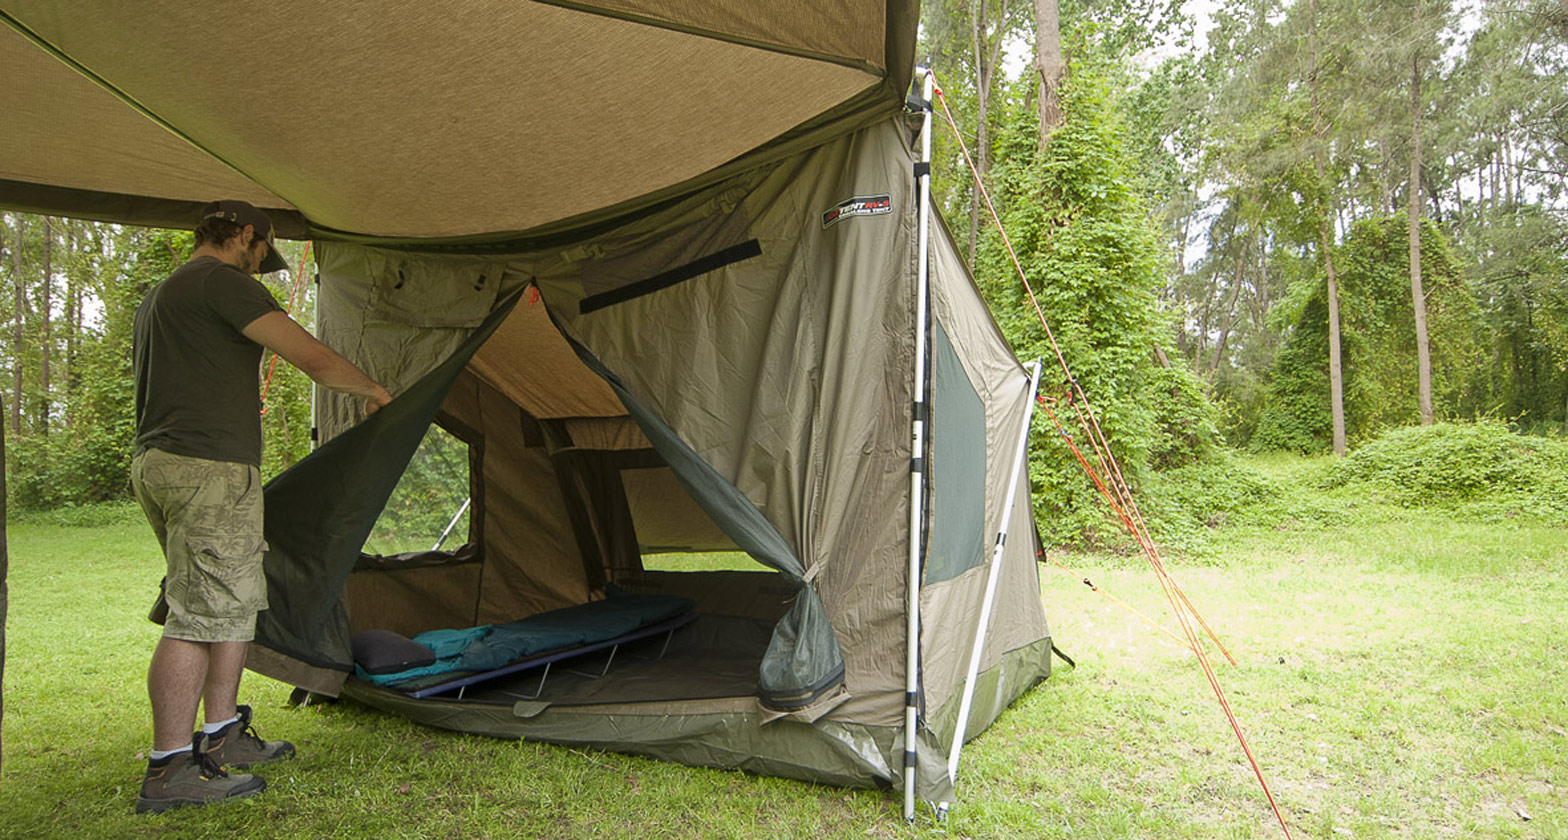 Rhino-Rack Oztent Tagalong Tent